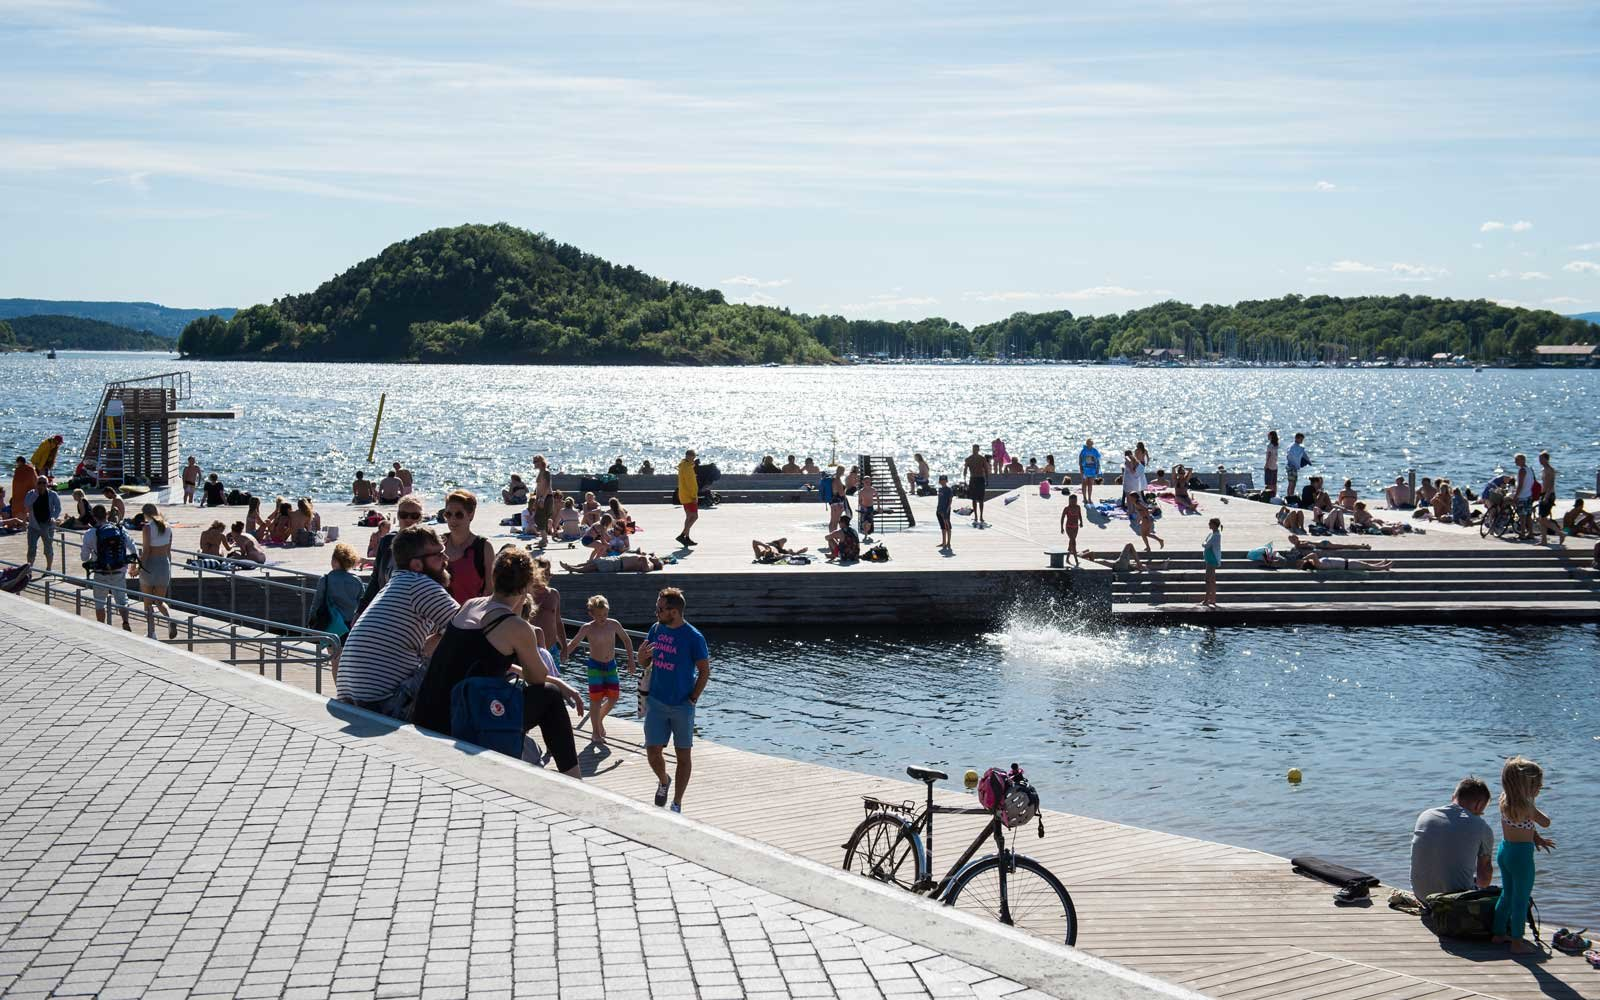 Sørenga Harbor Pool